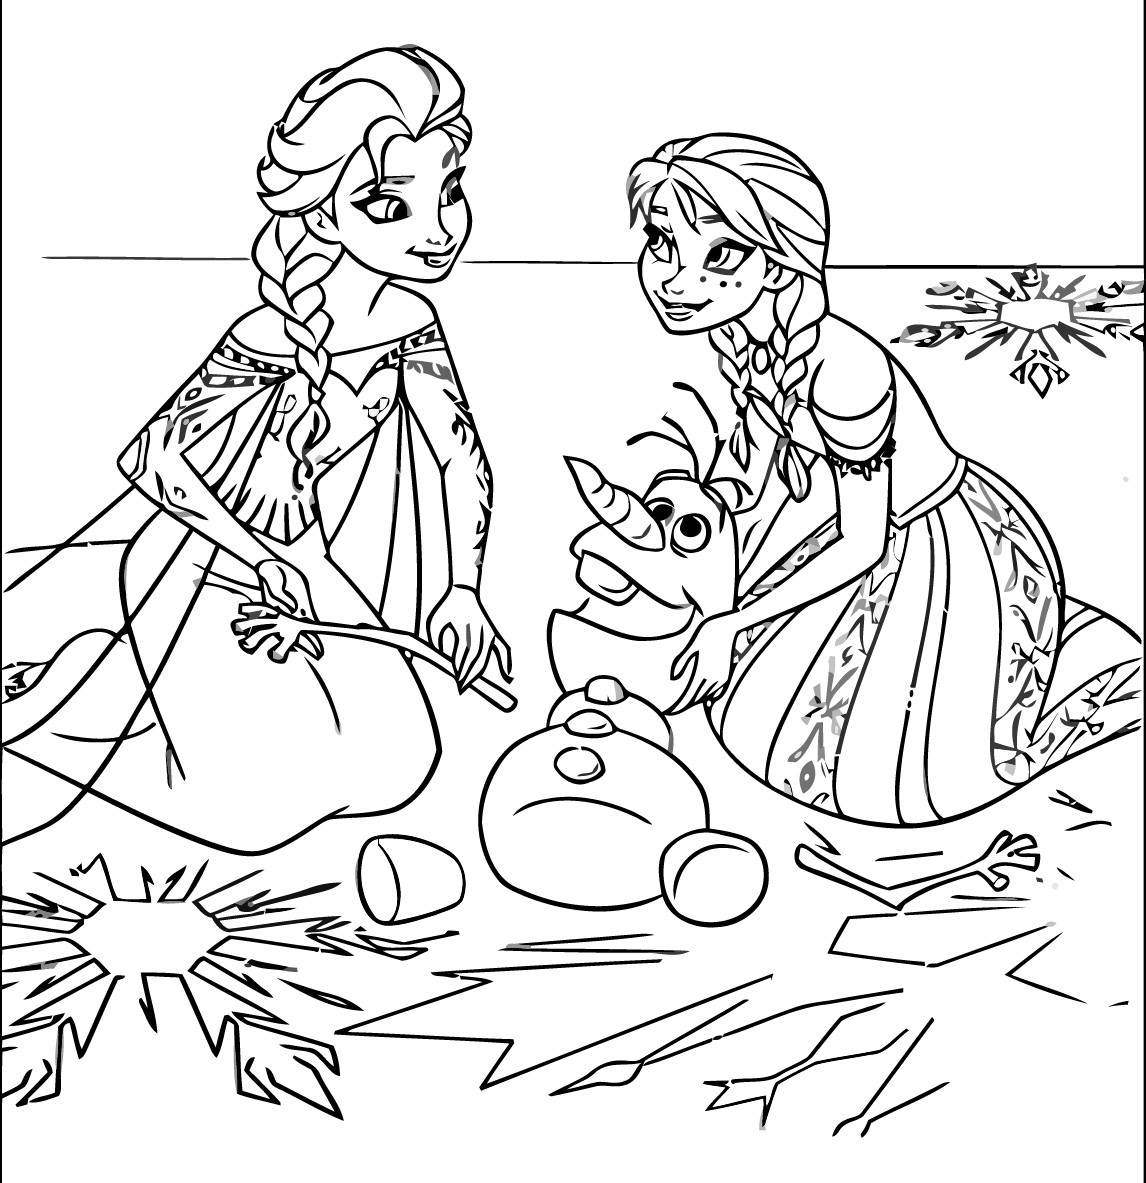 children coloring pages isolution printable free coloring sheets